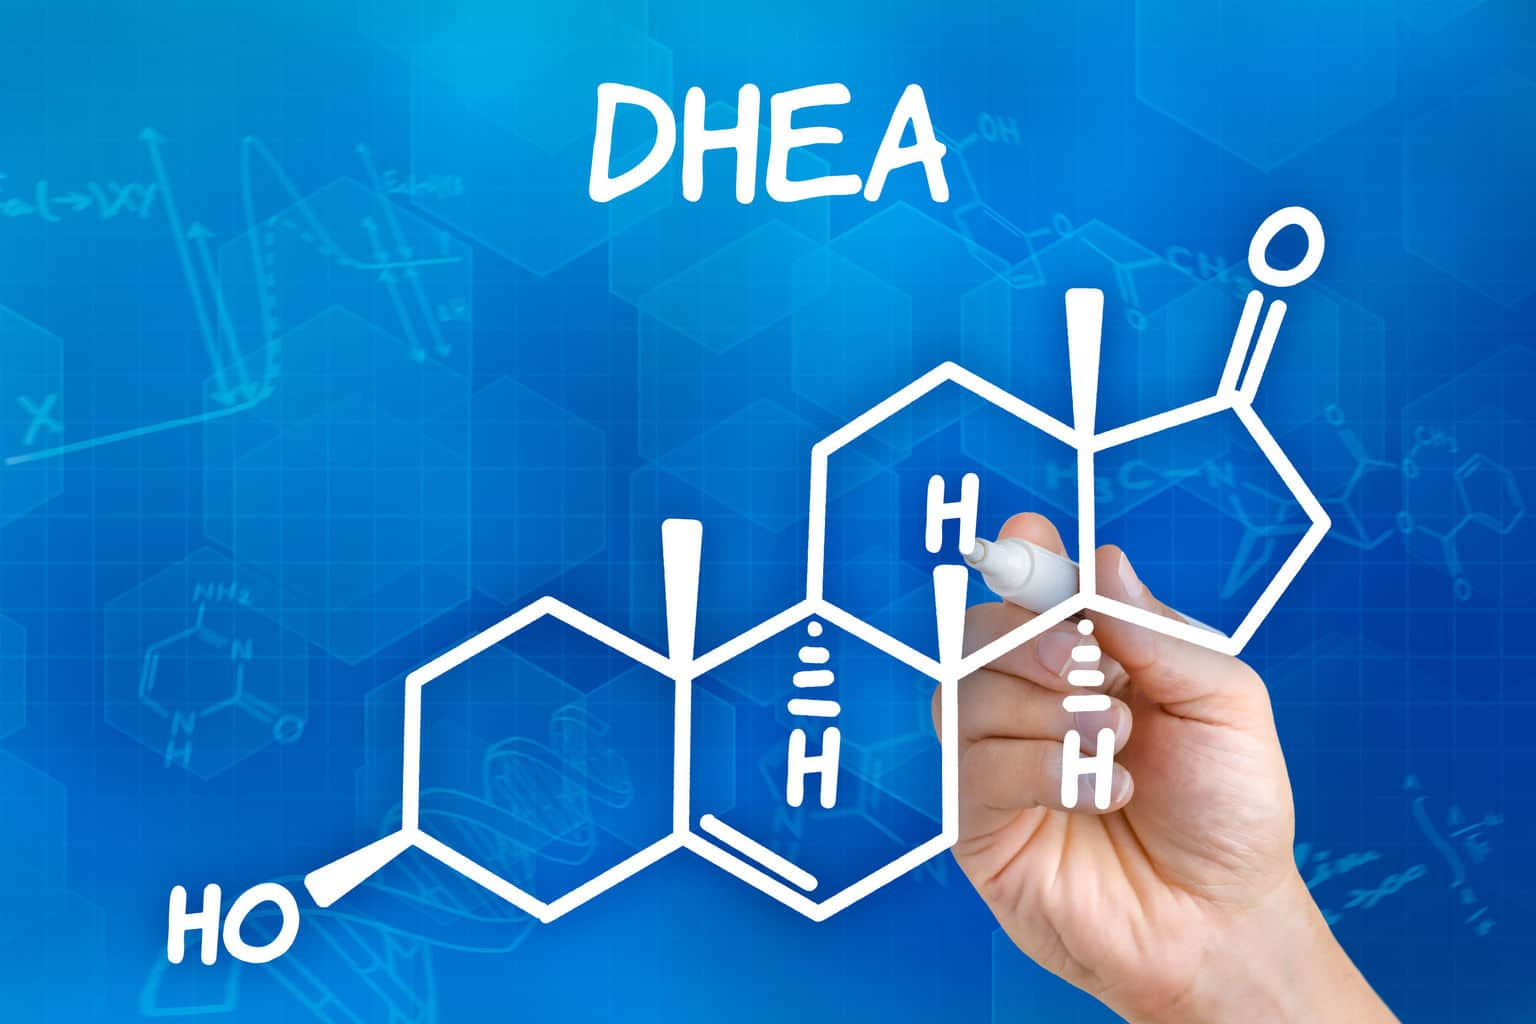 New DHEA discoveries to boost testosterone and fight aging